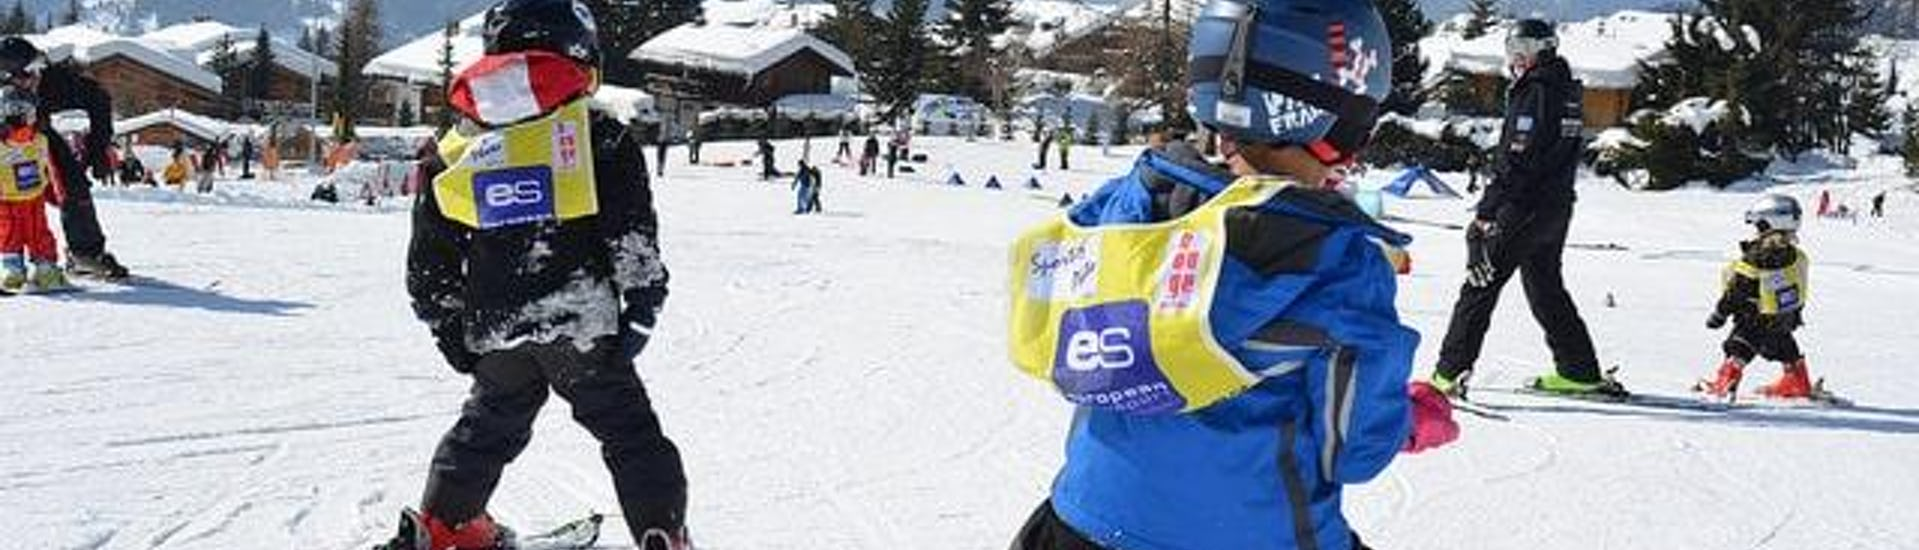 Ski Lessons Kids (6-12 years) - All Start Times - Advanced